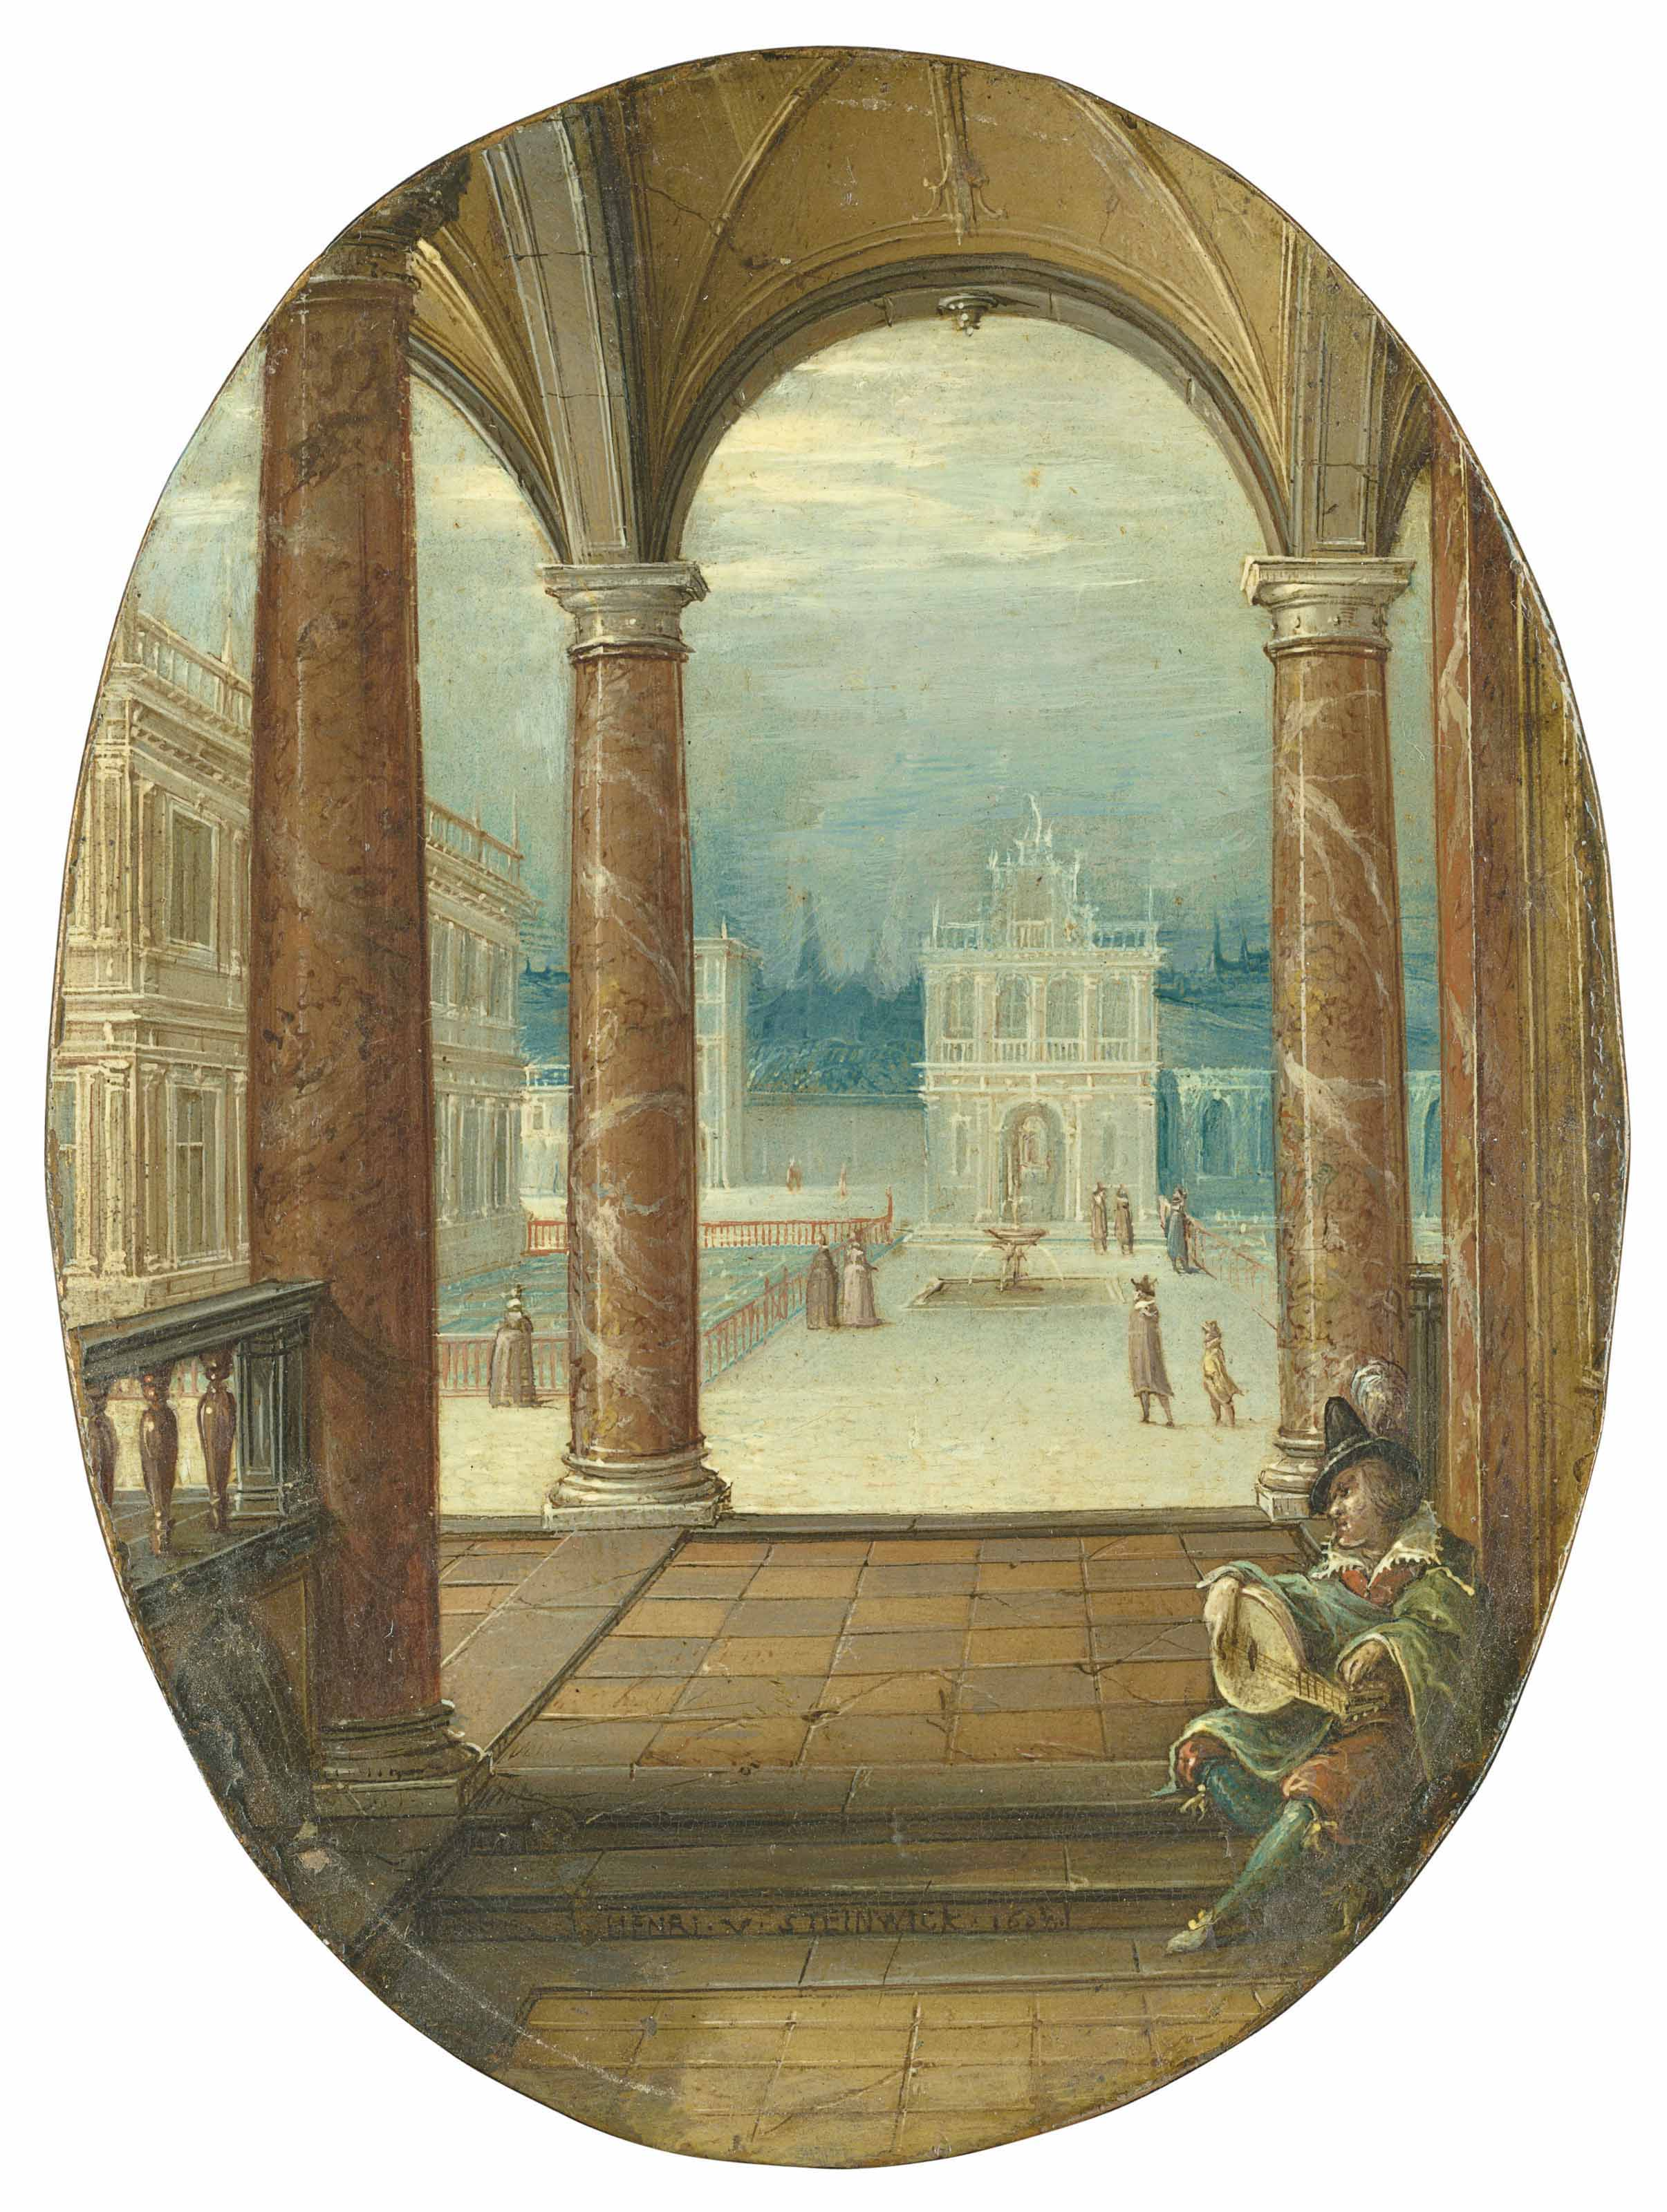 The courtyard of a renaissance palace, viewed from a portico, with a lute player in the foreground